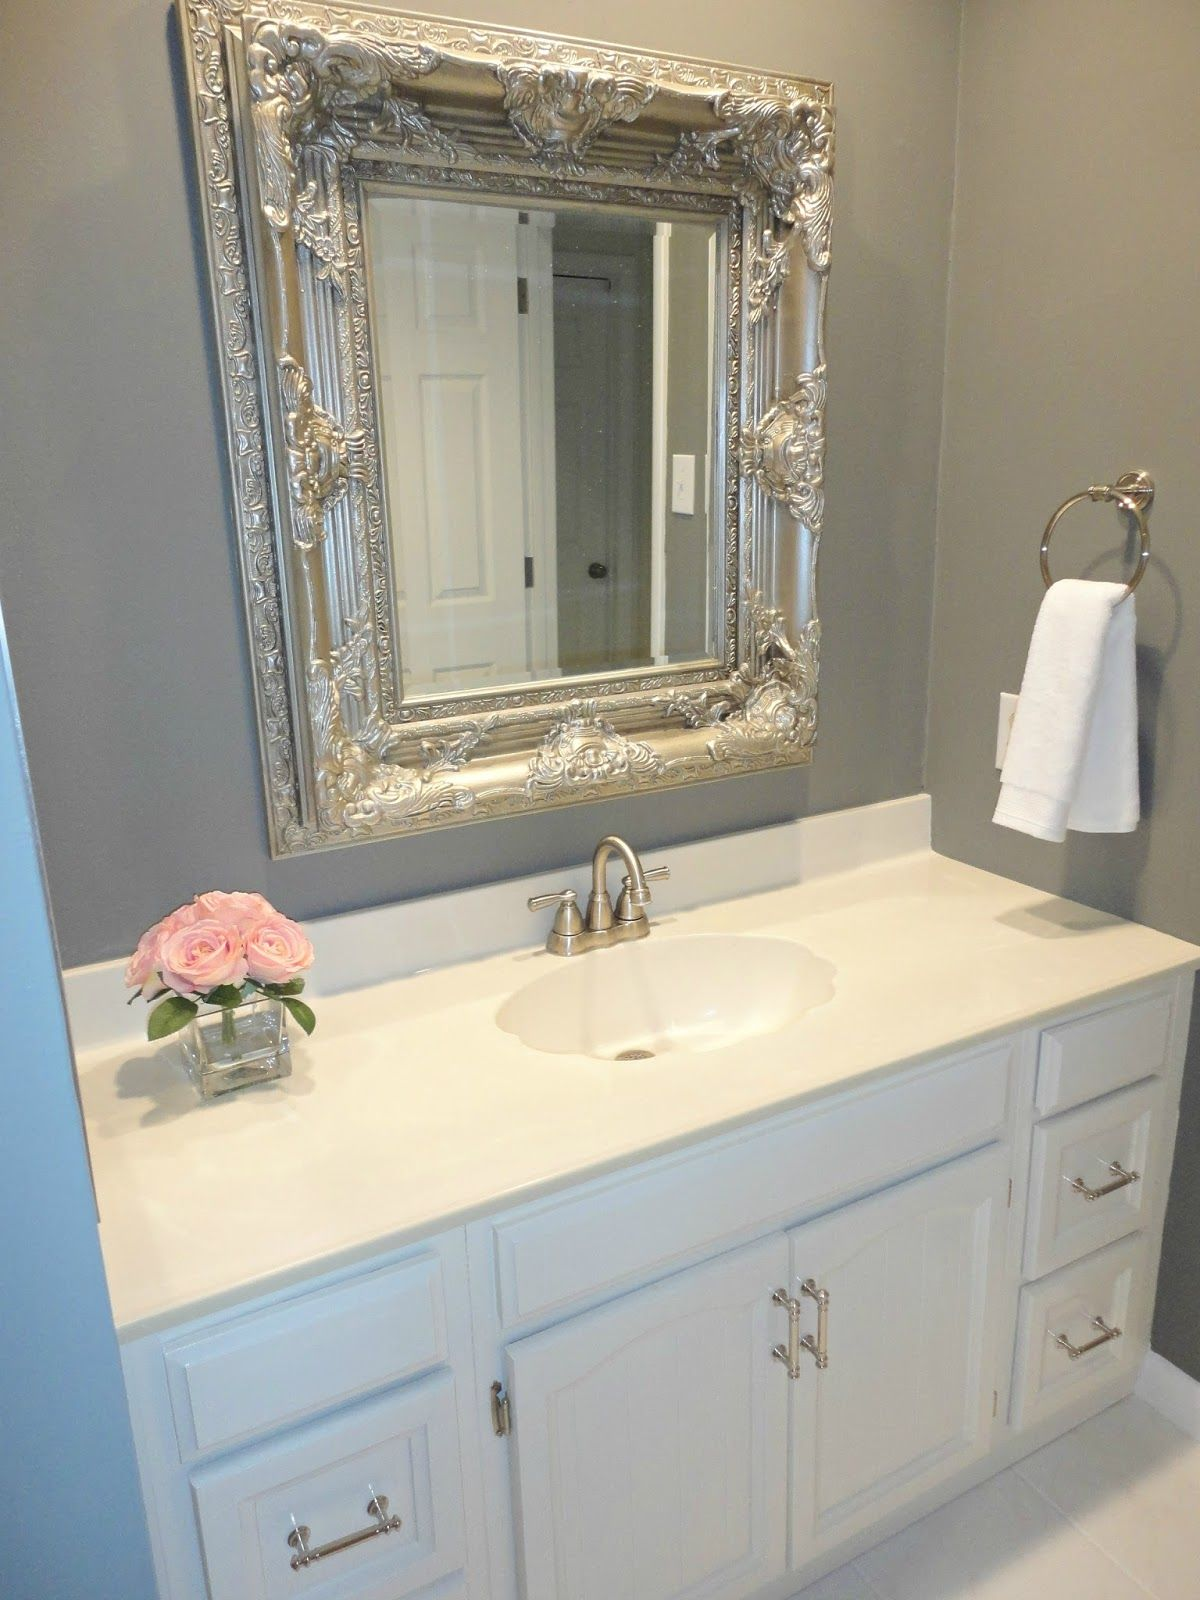 Bathroom Remodeling On A Budget diy bathroom remodel ideas for average people | diy bathroom